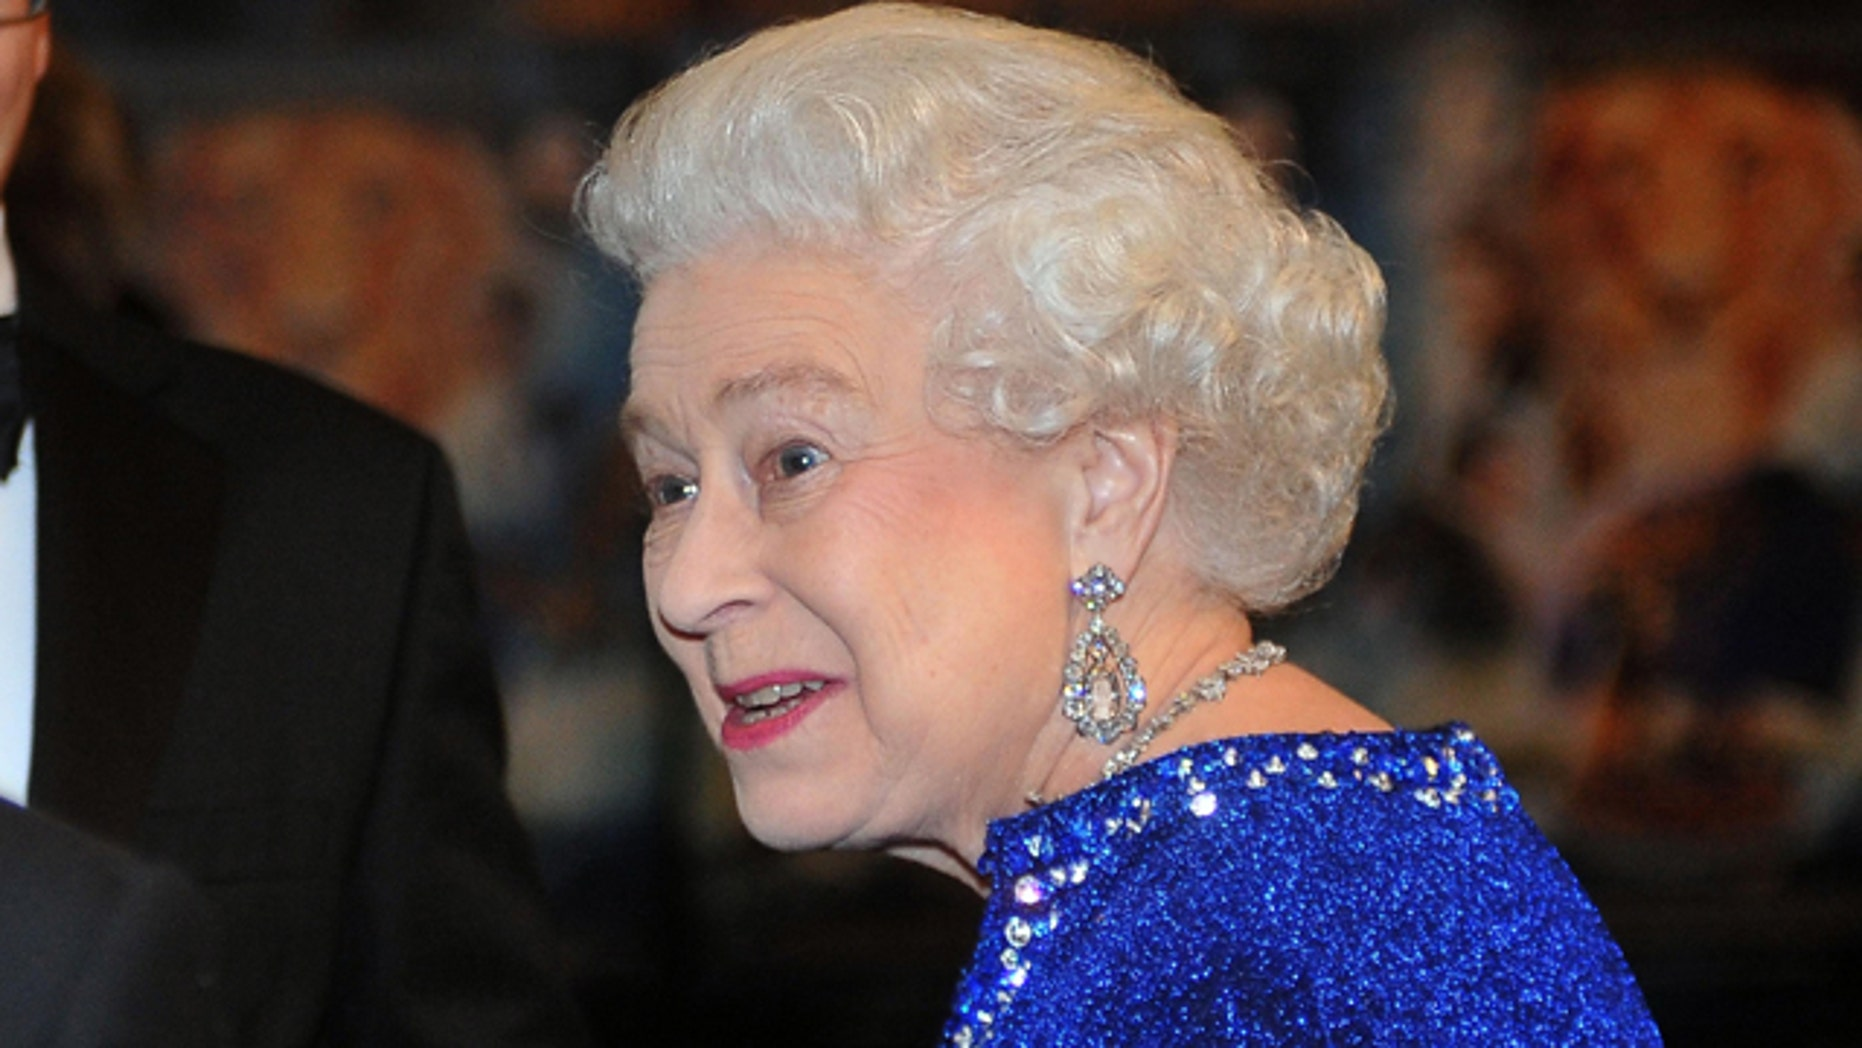 A pair of underwear that reportedly belonged to Queen Elizabeth II is set to wrangle about $9,000 in a Florida auction.